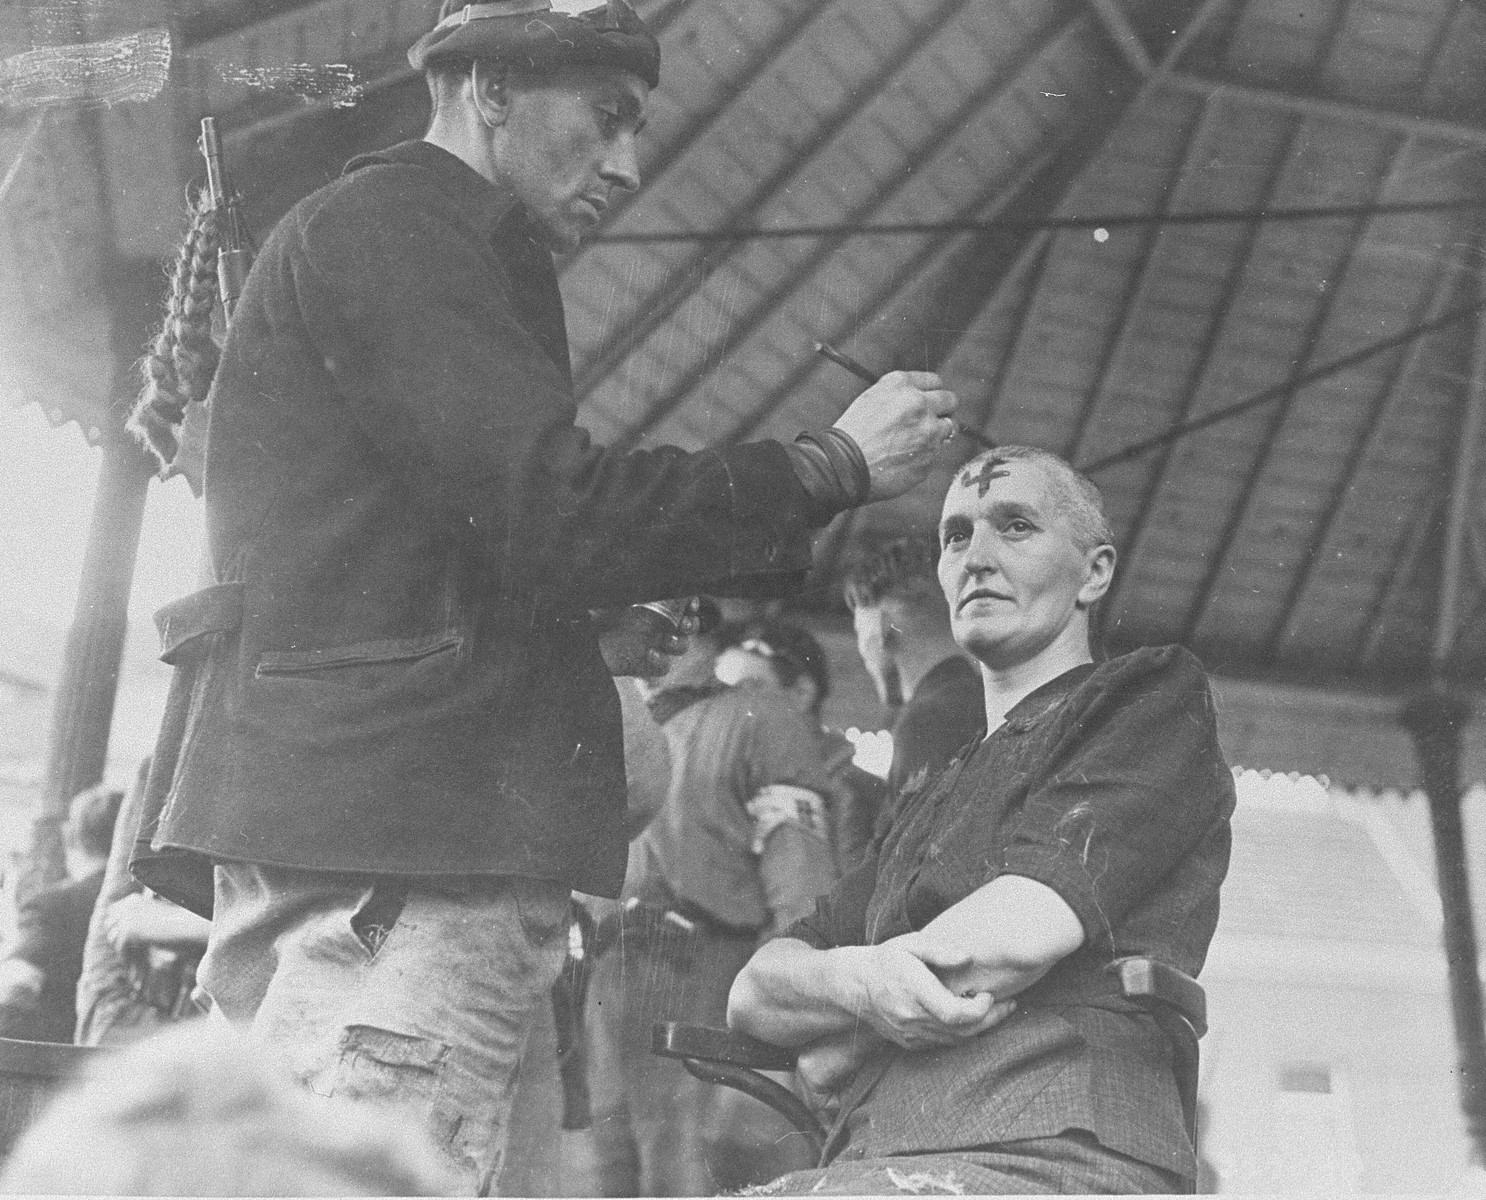 A member of the Belgian resistance paints a swastika on the forehead of a woman who collaborated with the Germans during the occupation of Belgium.  The resistance shaved her head and the heads of four other women in Lanaken as part of their public humilation.